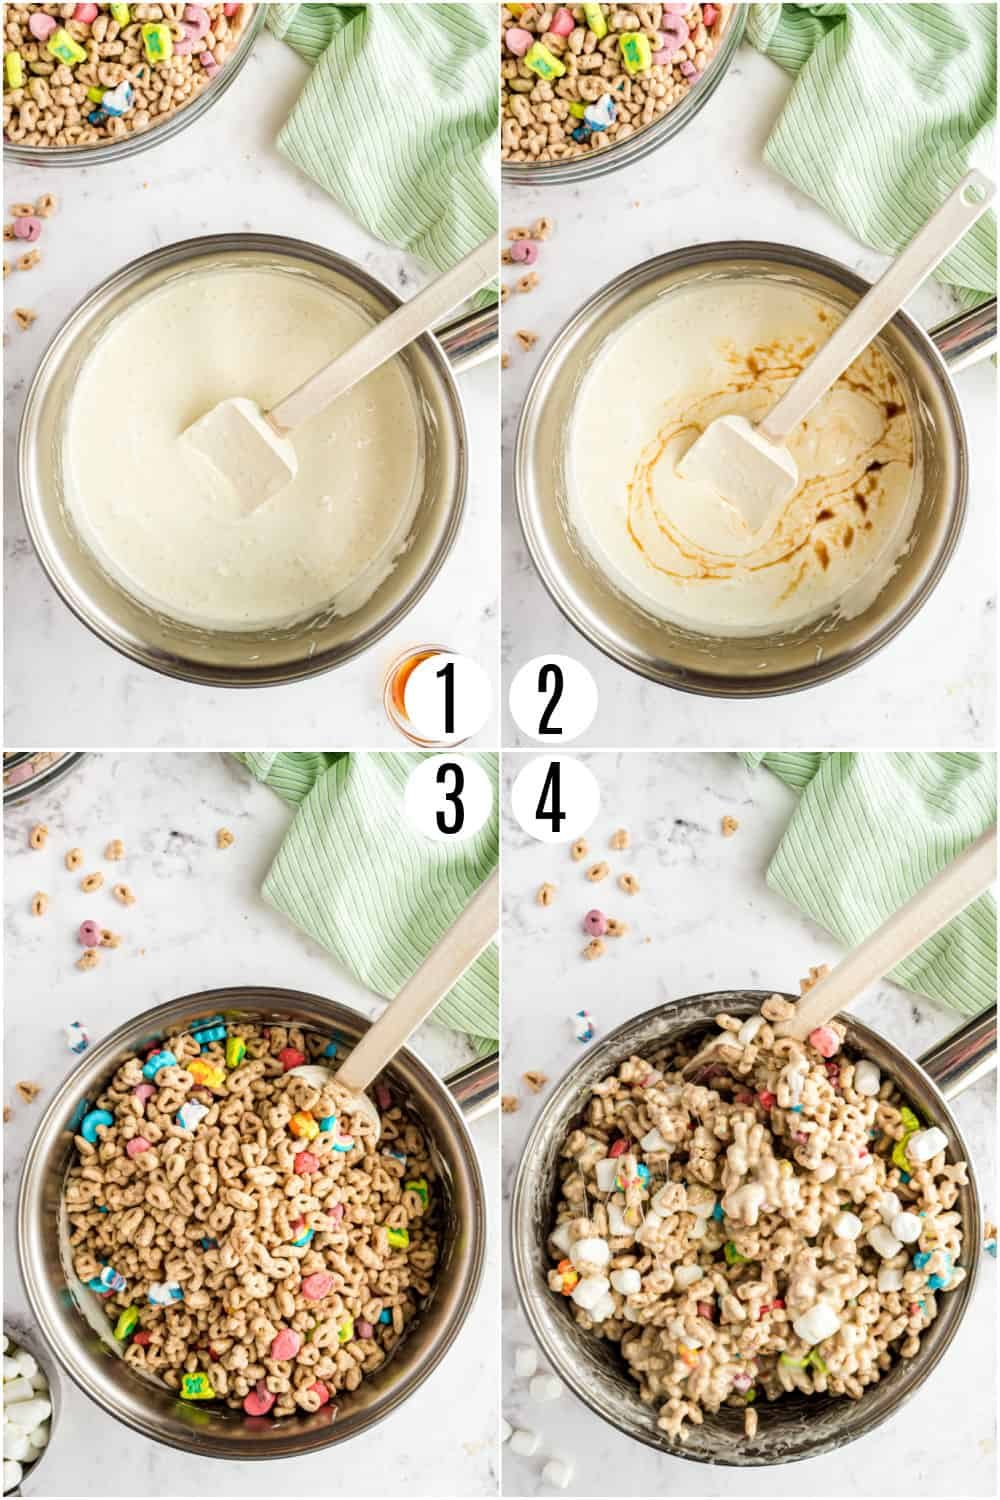 Step by step photos showing how to make lucky charms treat bars.